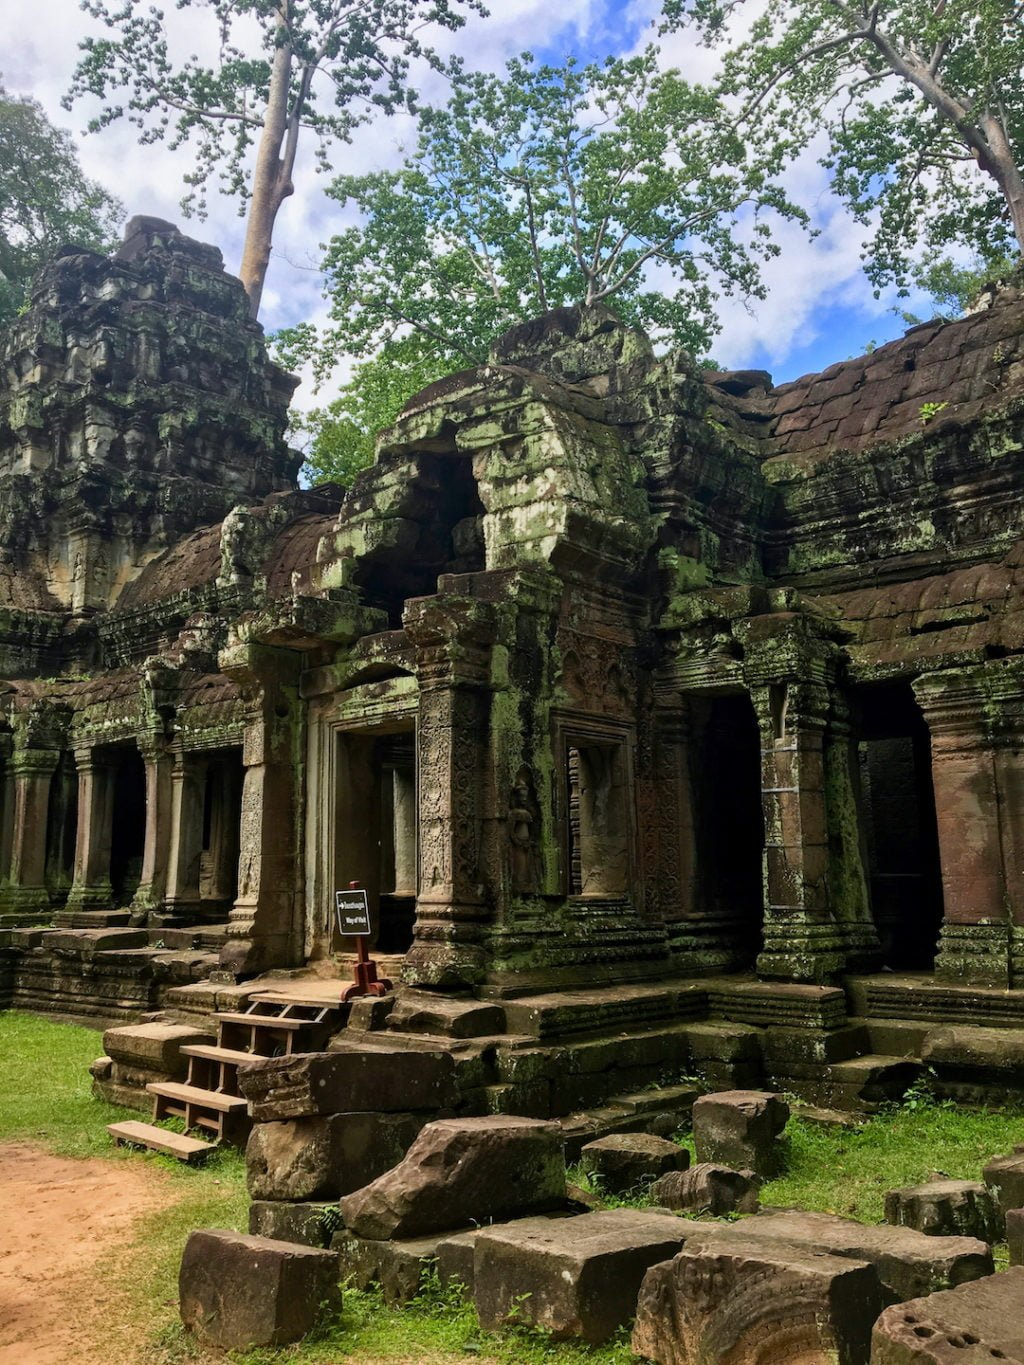 Temple Ruins • Remarkable Tips to Make Traveling to Cambodia Easier   The Wanderful Me